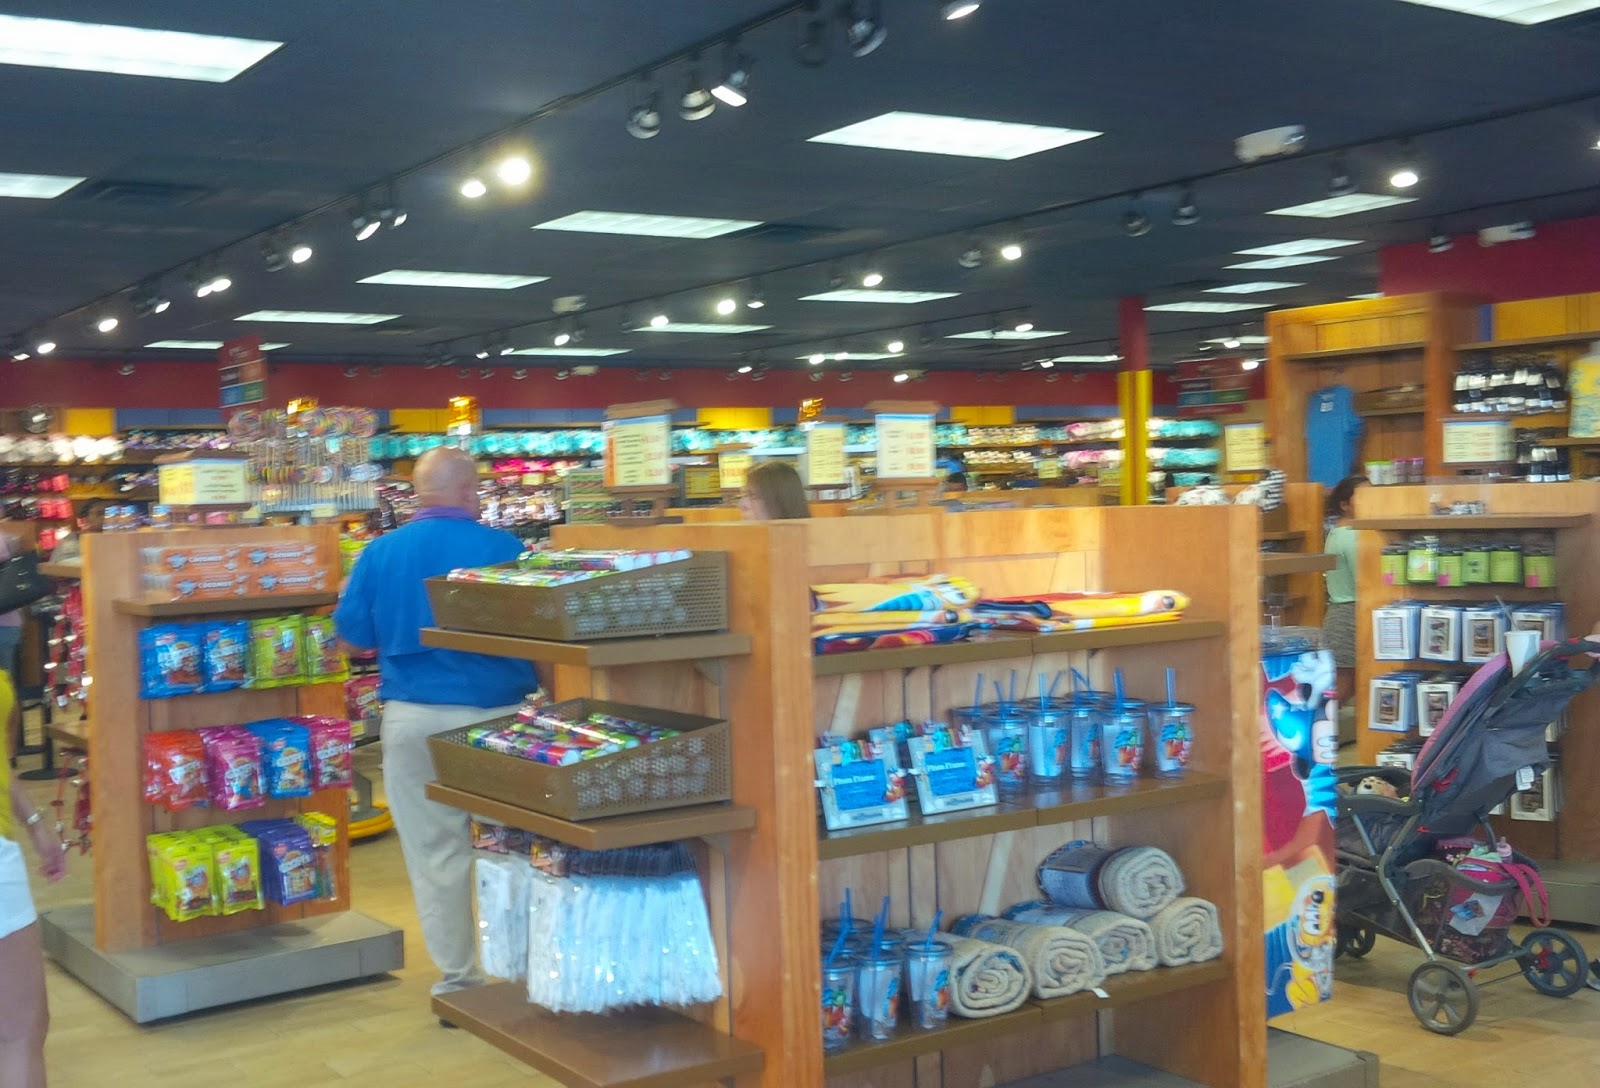 Disney Store online is now downloadsolutionspa5tr.gq, the ultimate Disney shopping destination! Shop for costumes, clothes, toys, collectibles, décor, movies and more at shopDisney.